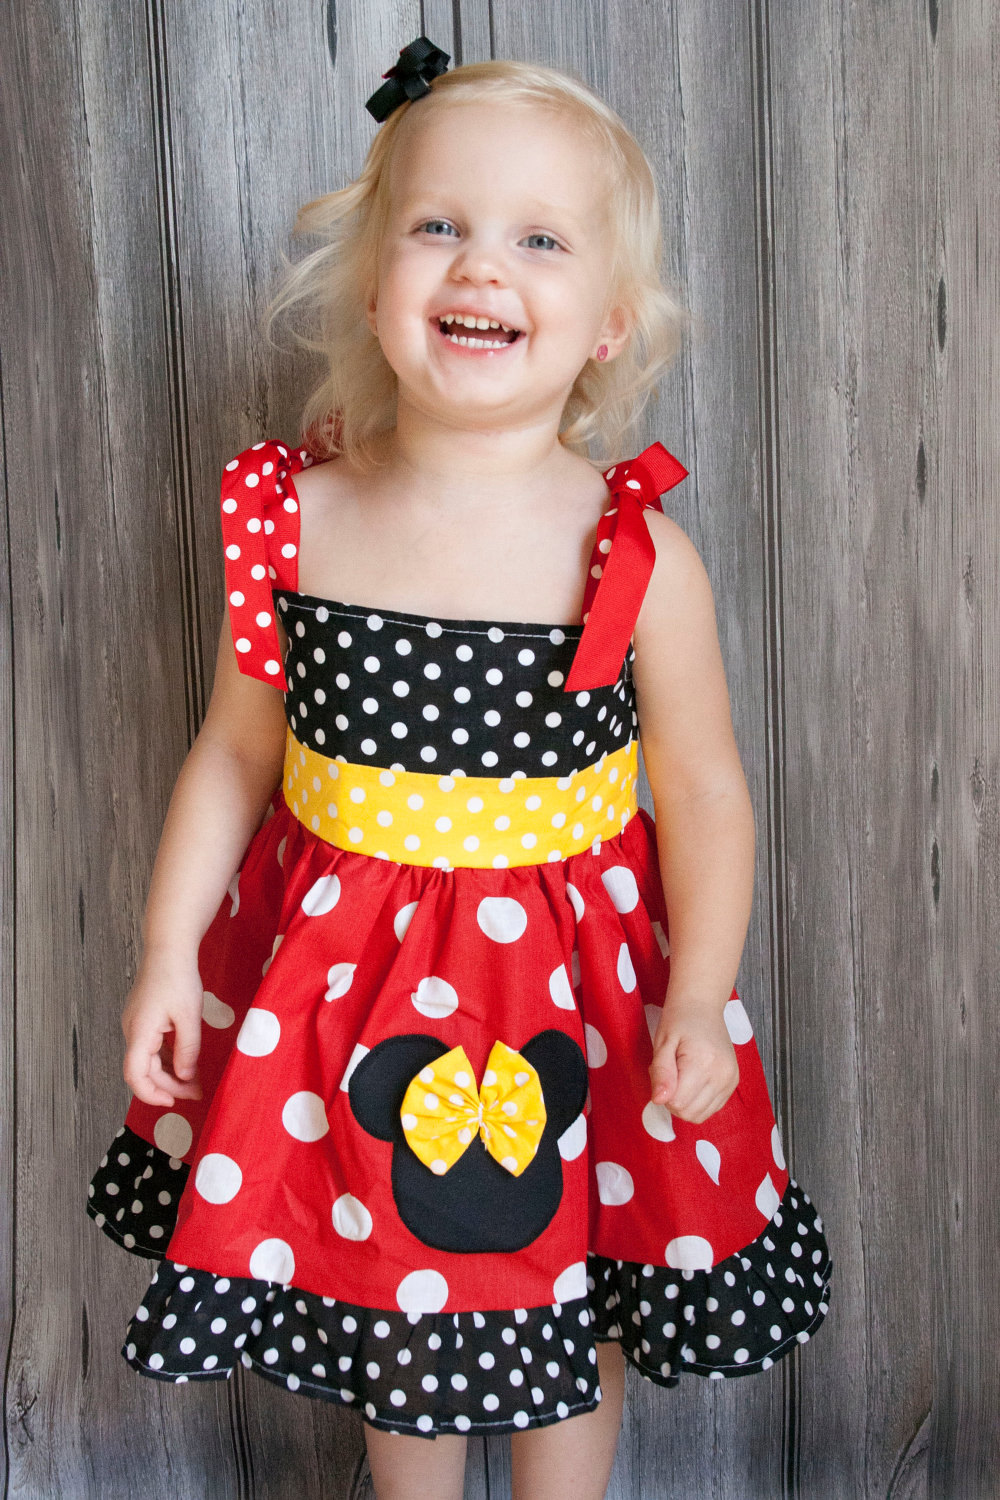 Minnie Mouse Items. Pay tribute to your favorite Disney icon with Minnie Mouse Merchandise from Kohl's. Our full selection of Minnie Mouse Items is perfect for any lifelong fan of one of the most recognizable cartoon characters of all time!